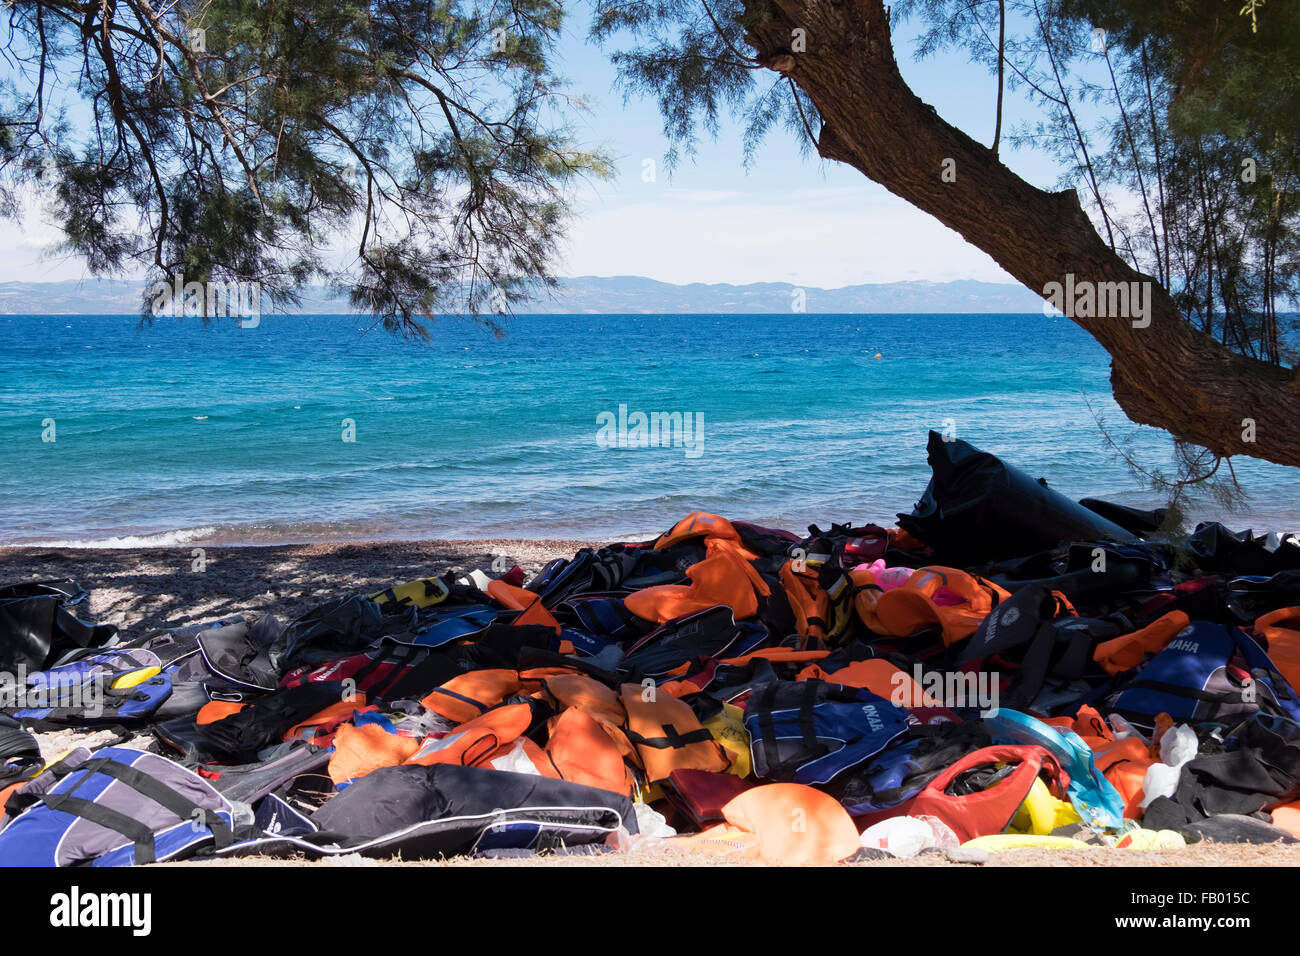 Piles of life jackets on a beach on the island of Lesvos, Greece after being discarded by refugees crossing from - Stock Image